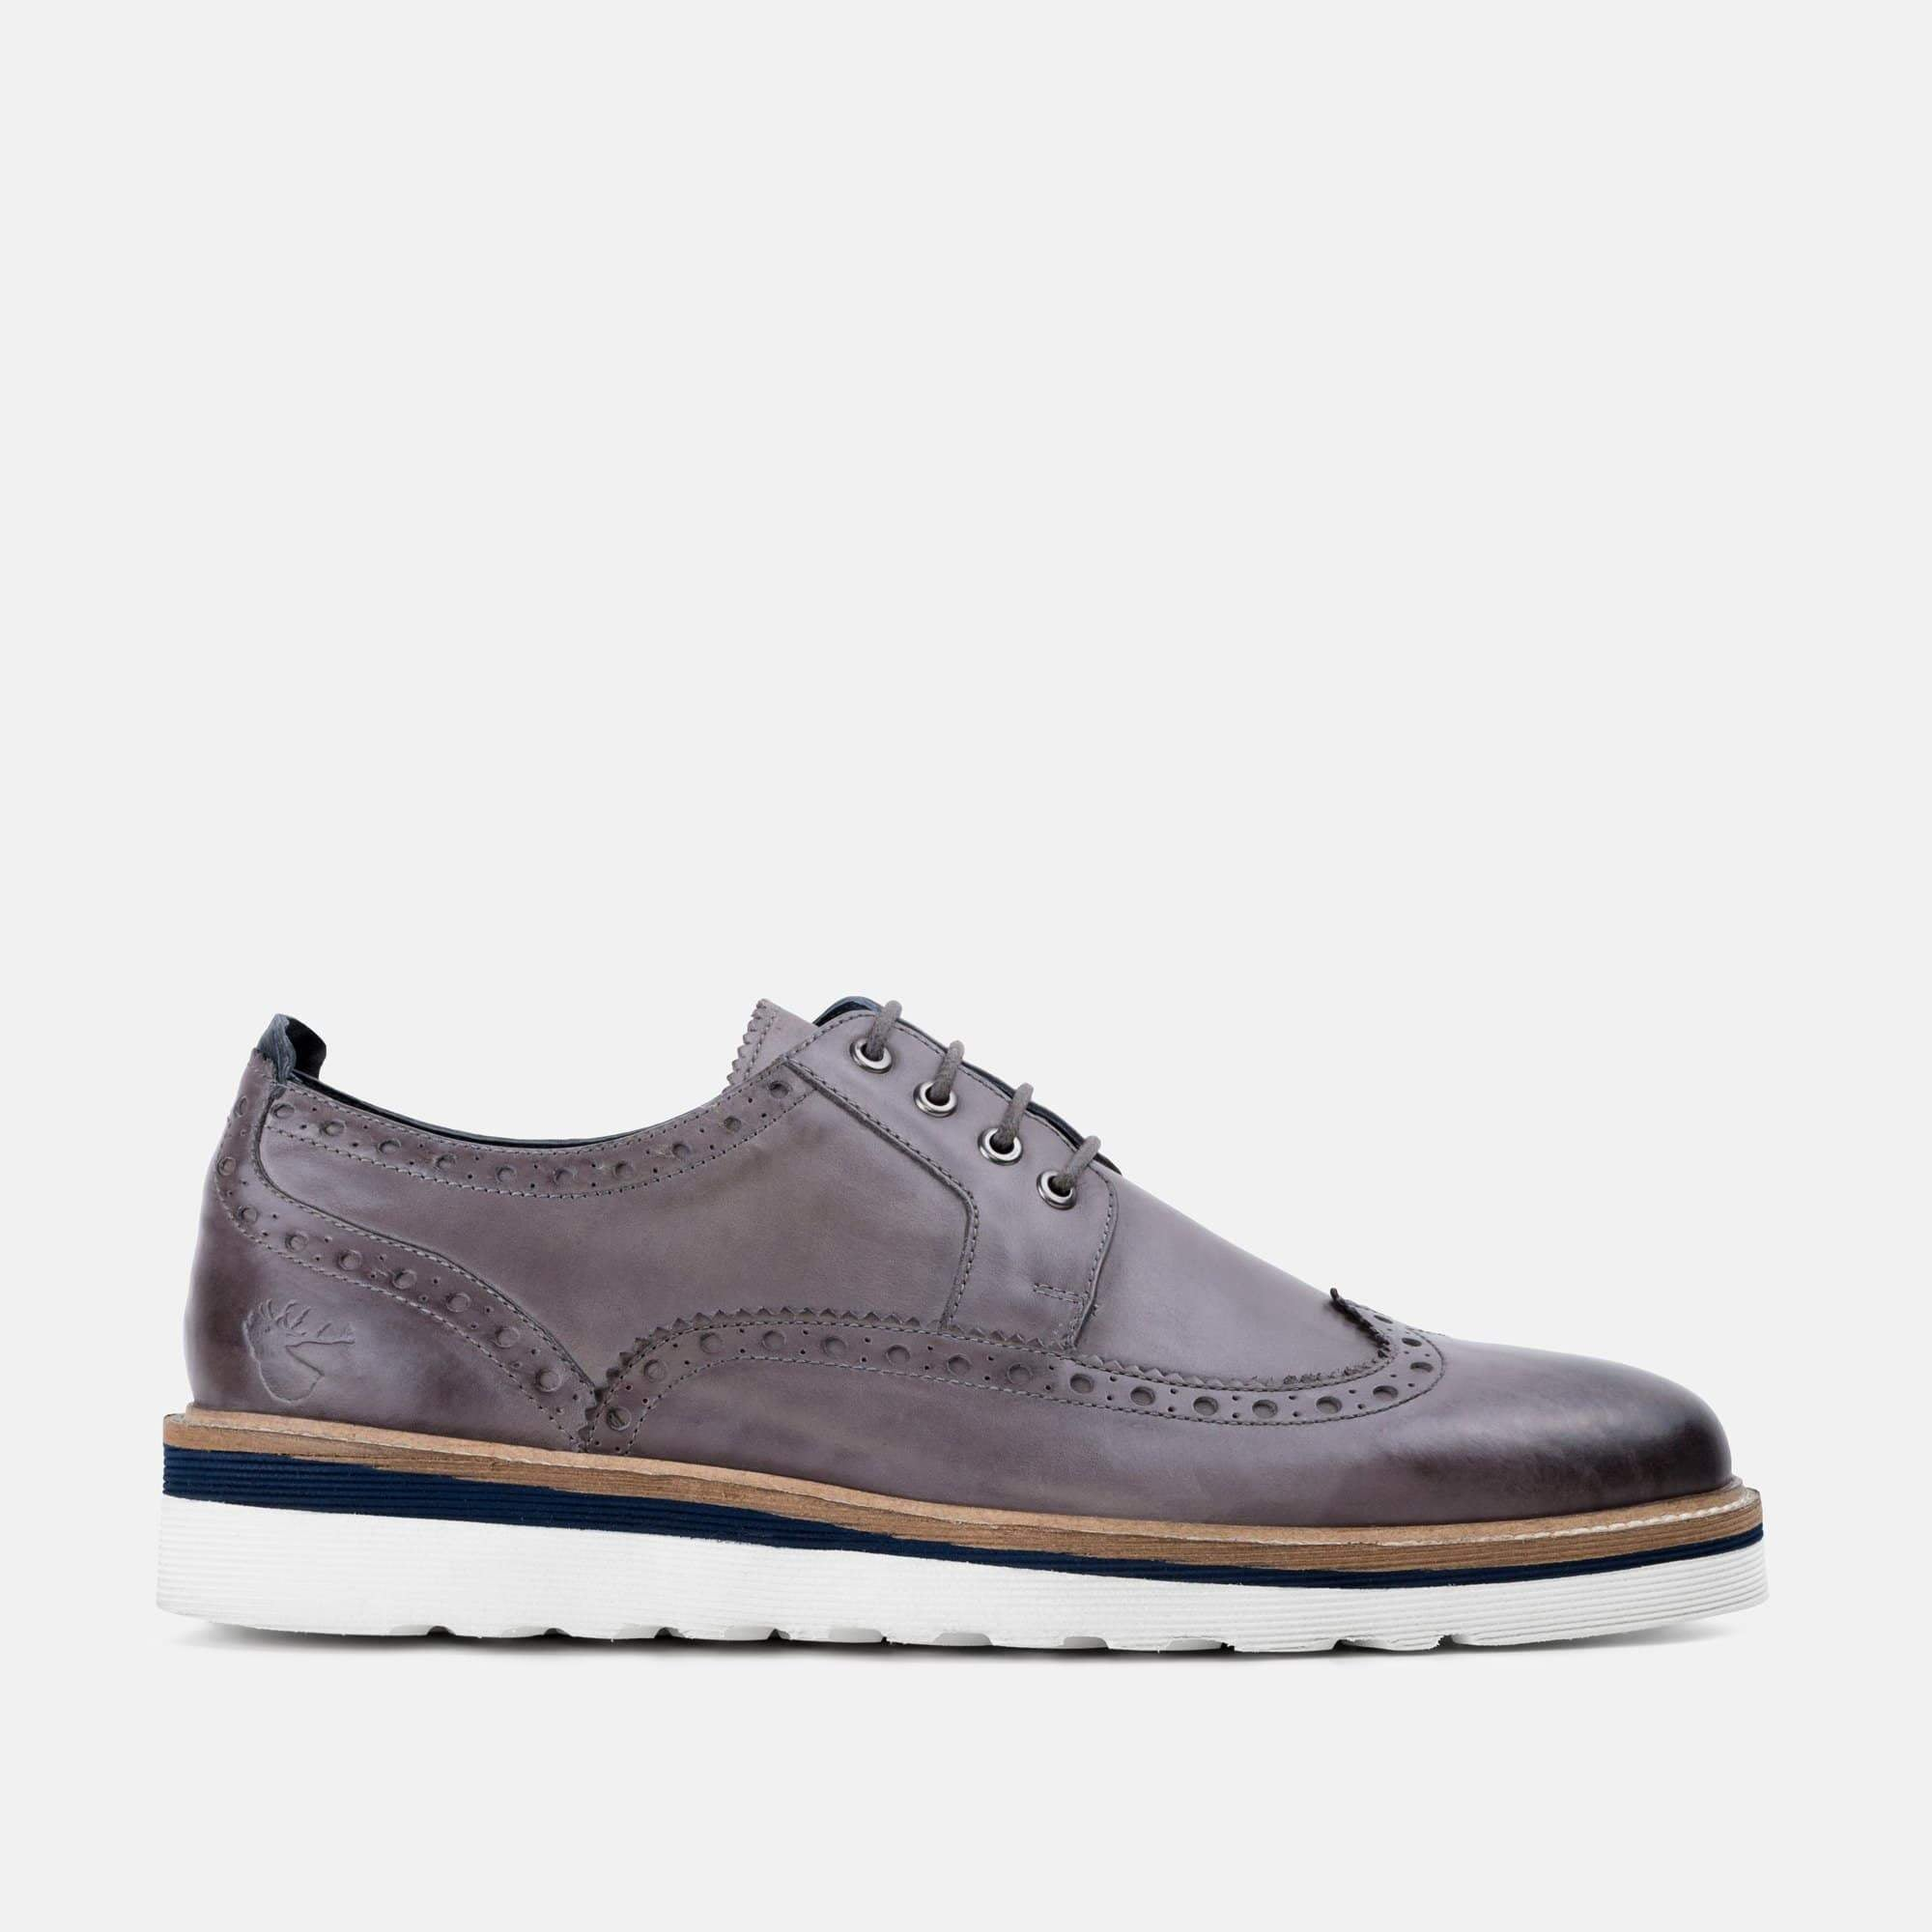 Goodwin Smith Footwear Ripley Grey Casual Leather Brogue Shoe